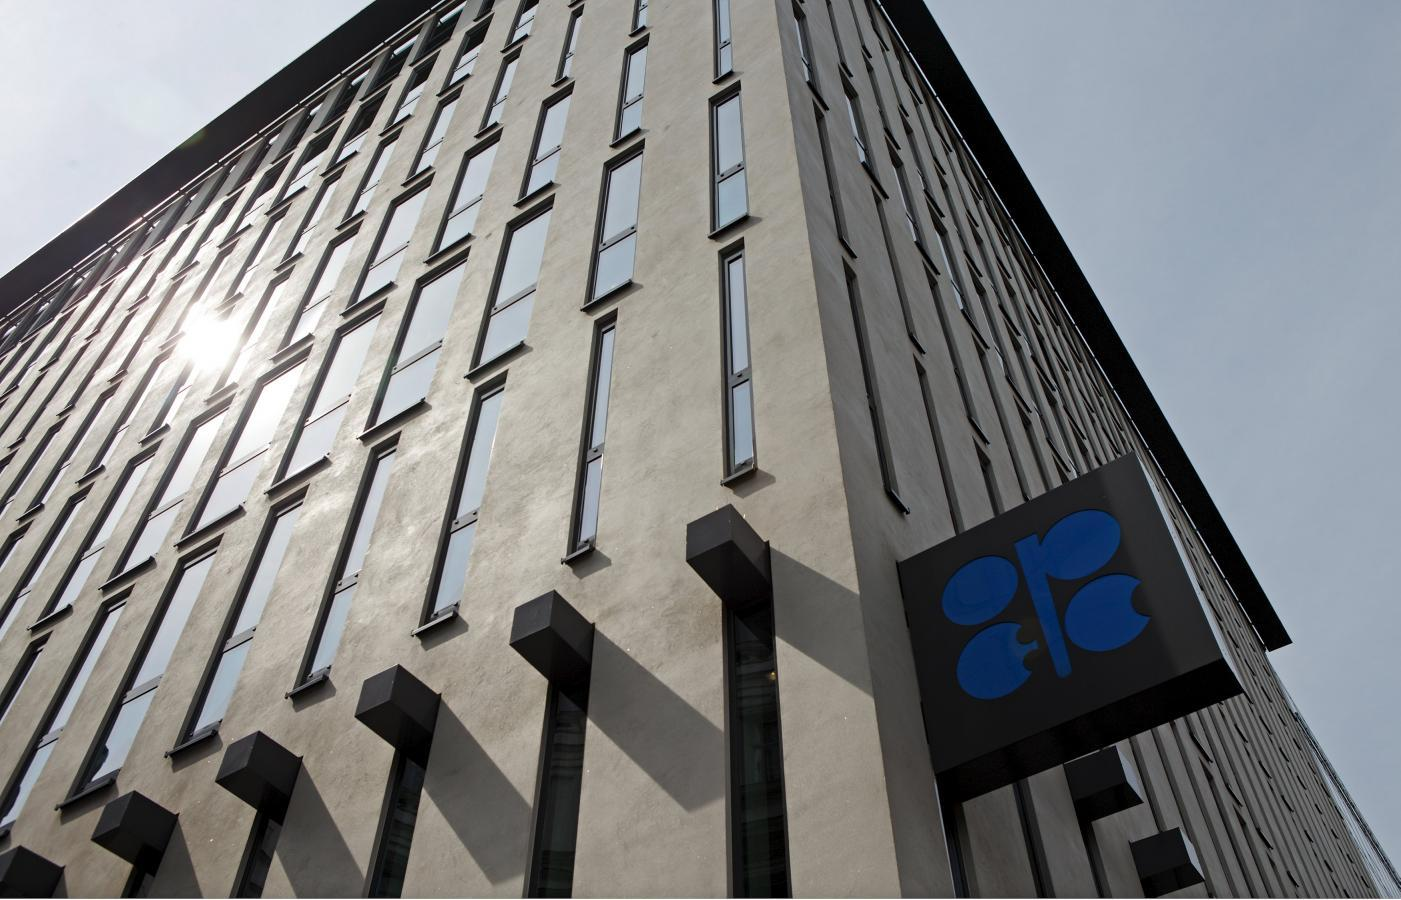 Exclusive: Arab OPEC producers brace for oil-price weakness for rest of 2015